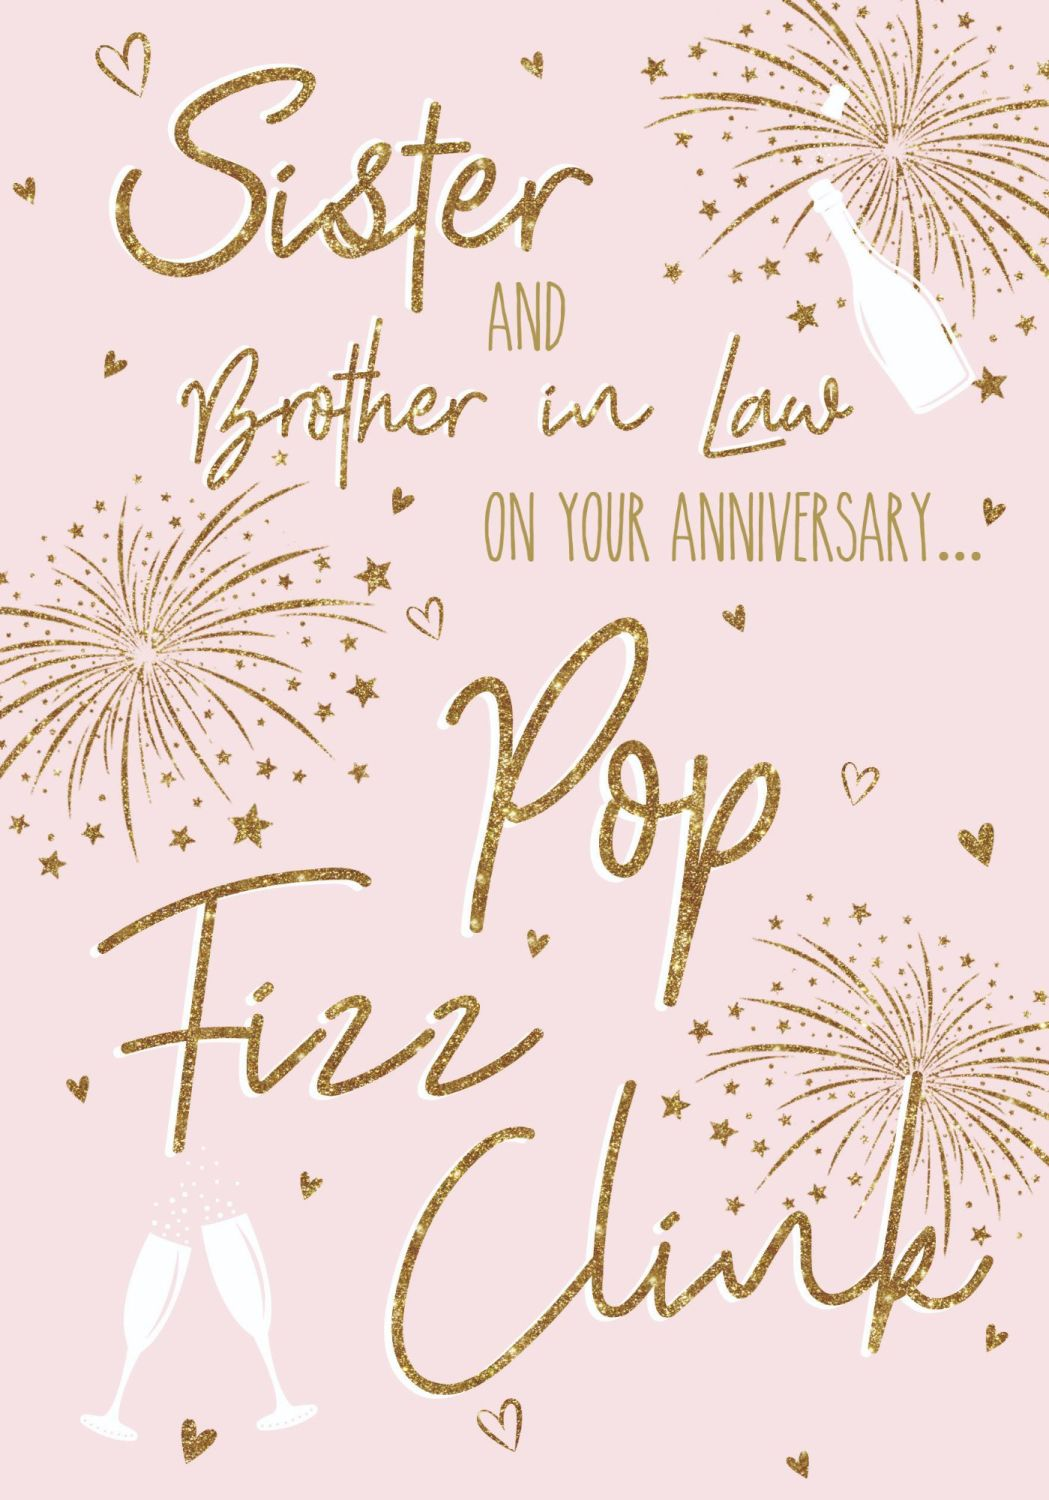 Sister & Brother In Law Anniversary Cards - POP FIZZ CLINK - Sparkly ANNIVE